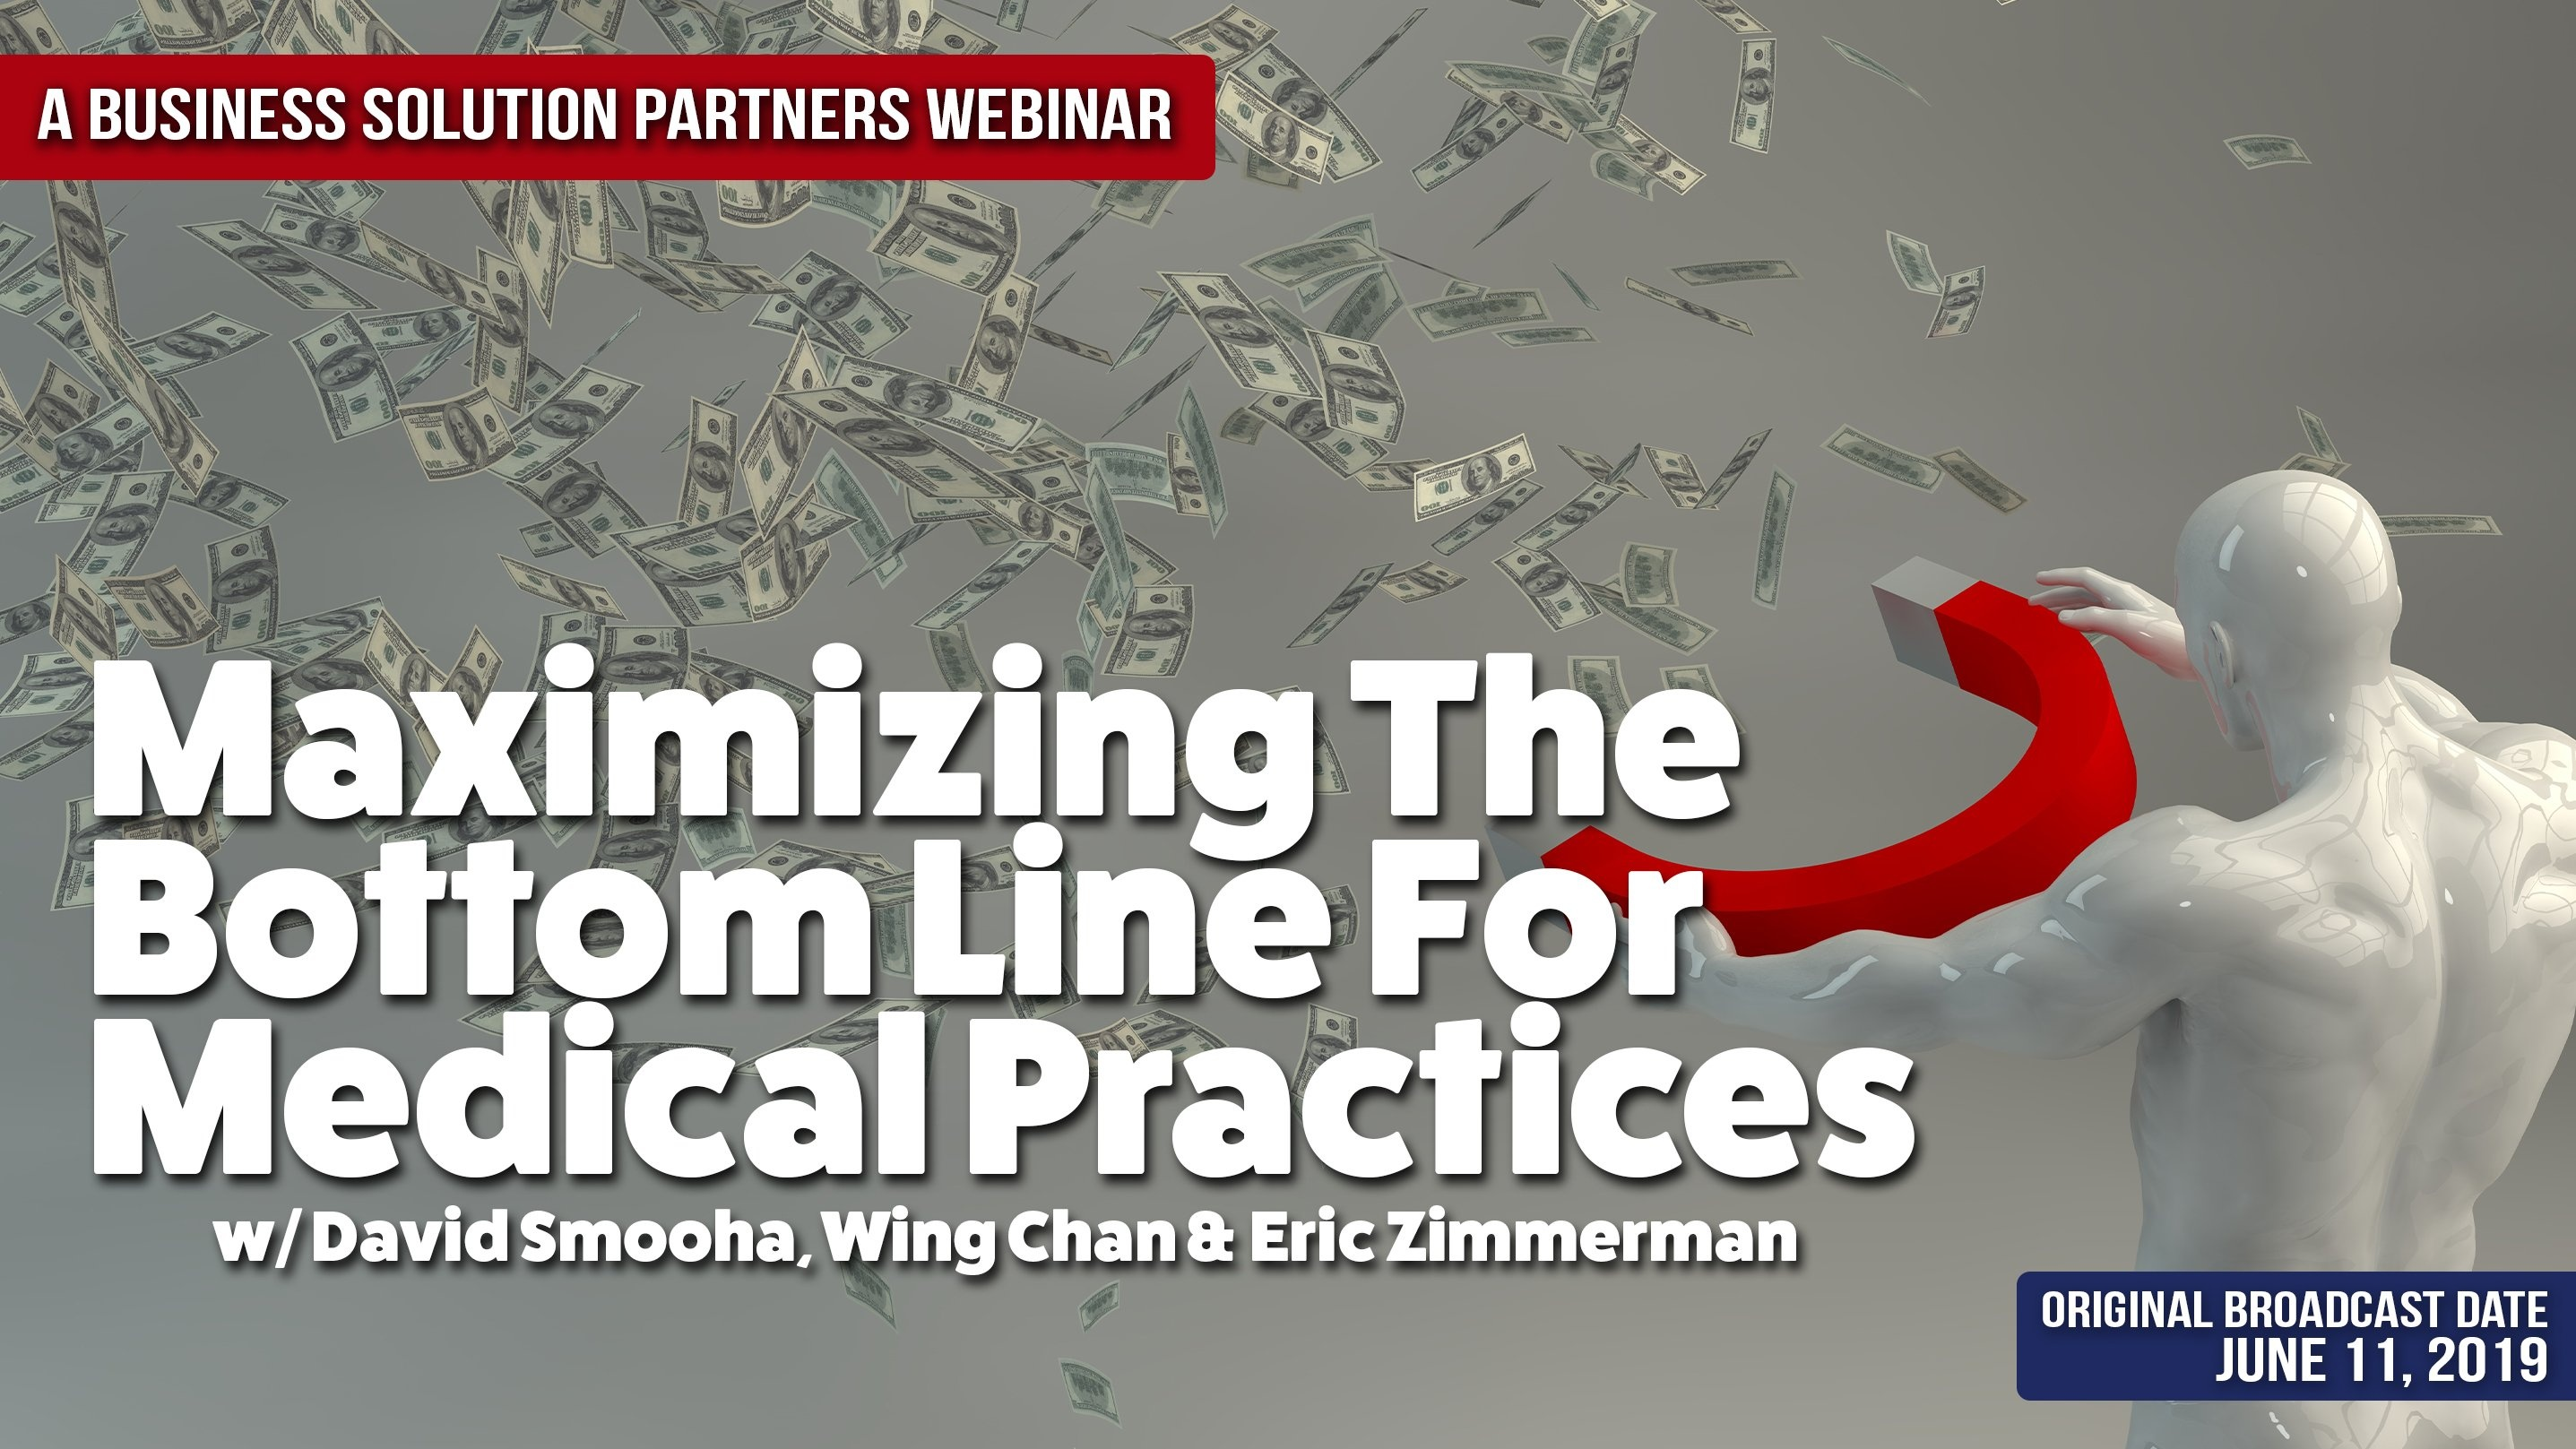 Check Out Our Webinar - Maximizing The Bottom Line For Medical Practices